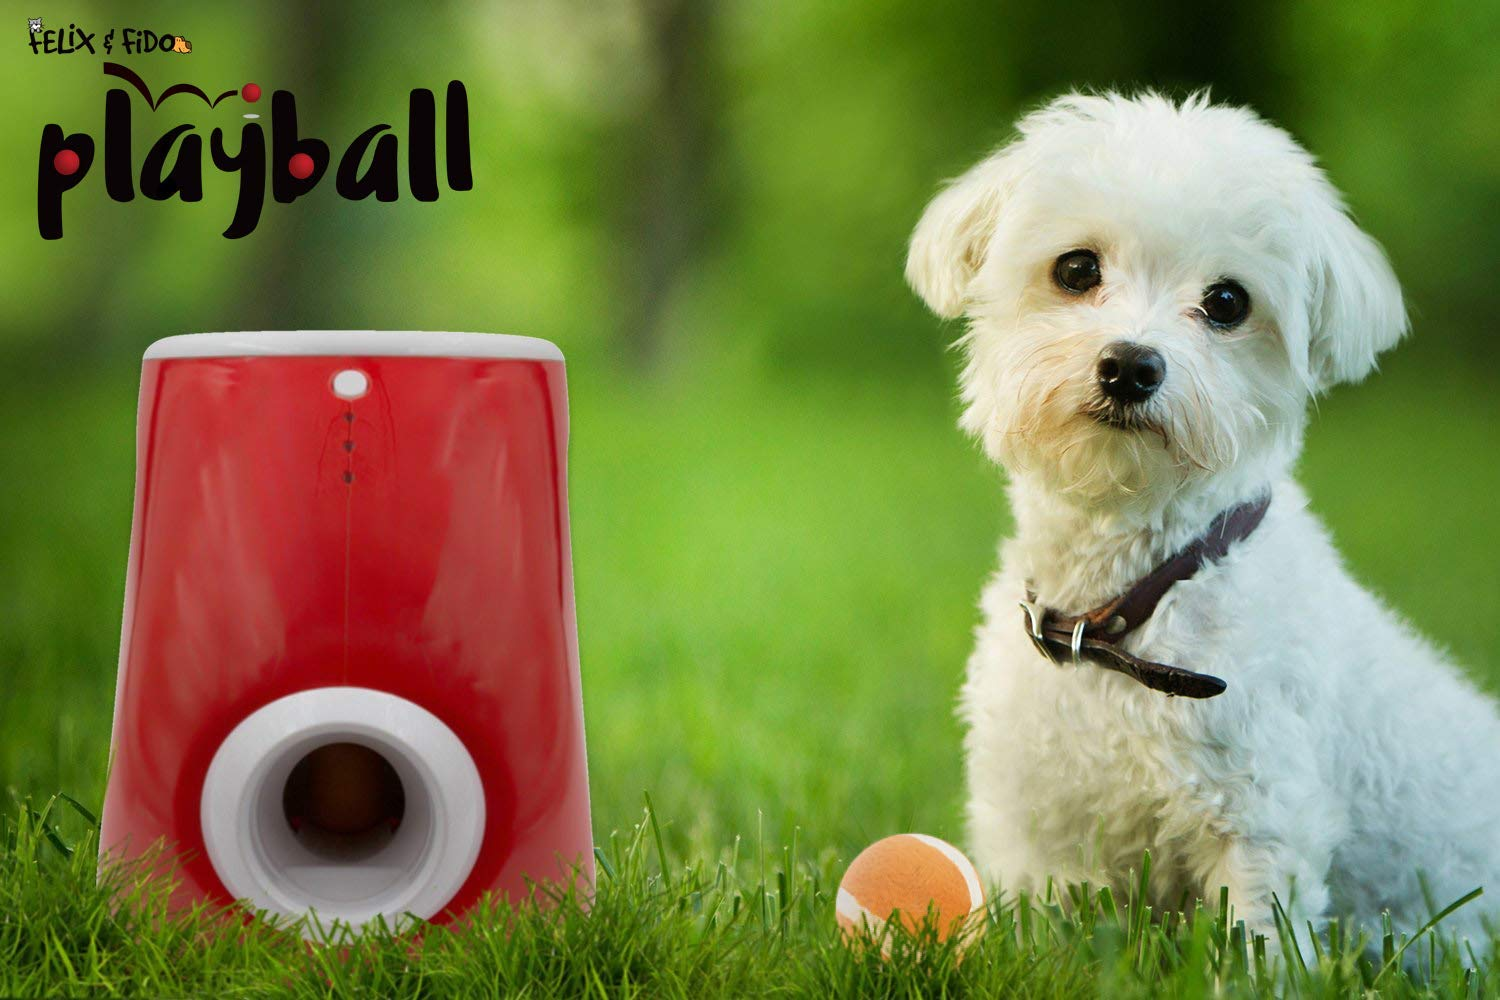 Felix & Fido Playball! Automatic Ball Launcher for Dogs. 3 Throwing Distance Settings, 3 Small Durable Tennis Balls Included, Launches Up to 20 Feet,for Indoor and Outdoor Play.for Small Dogs ONLY by Felix & Fido (Image #7)